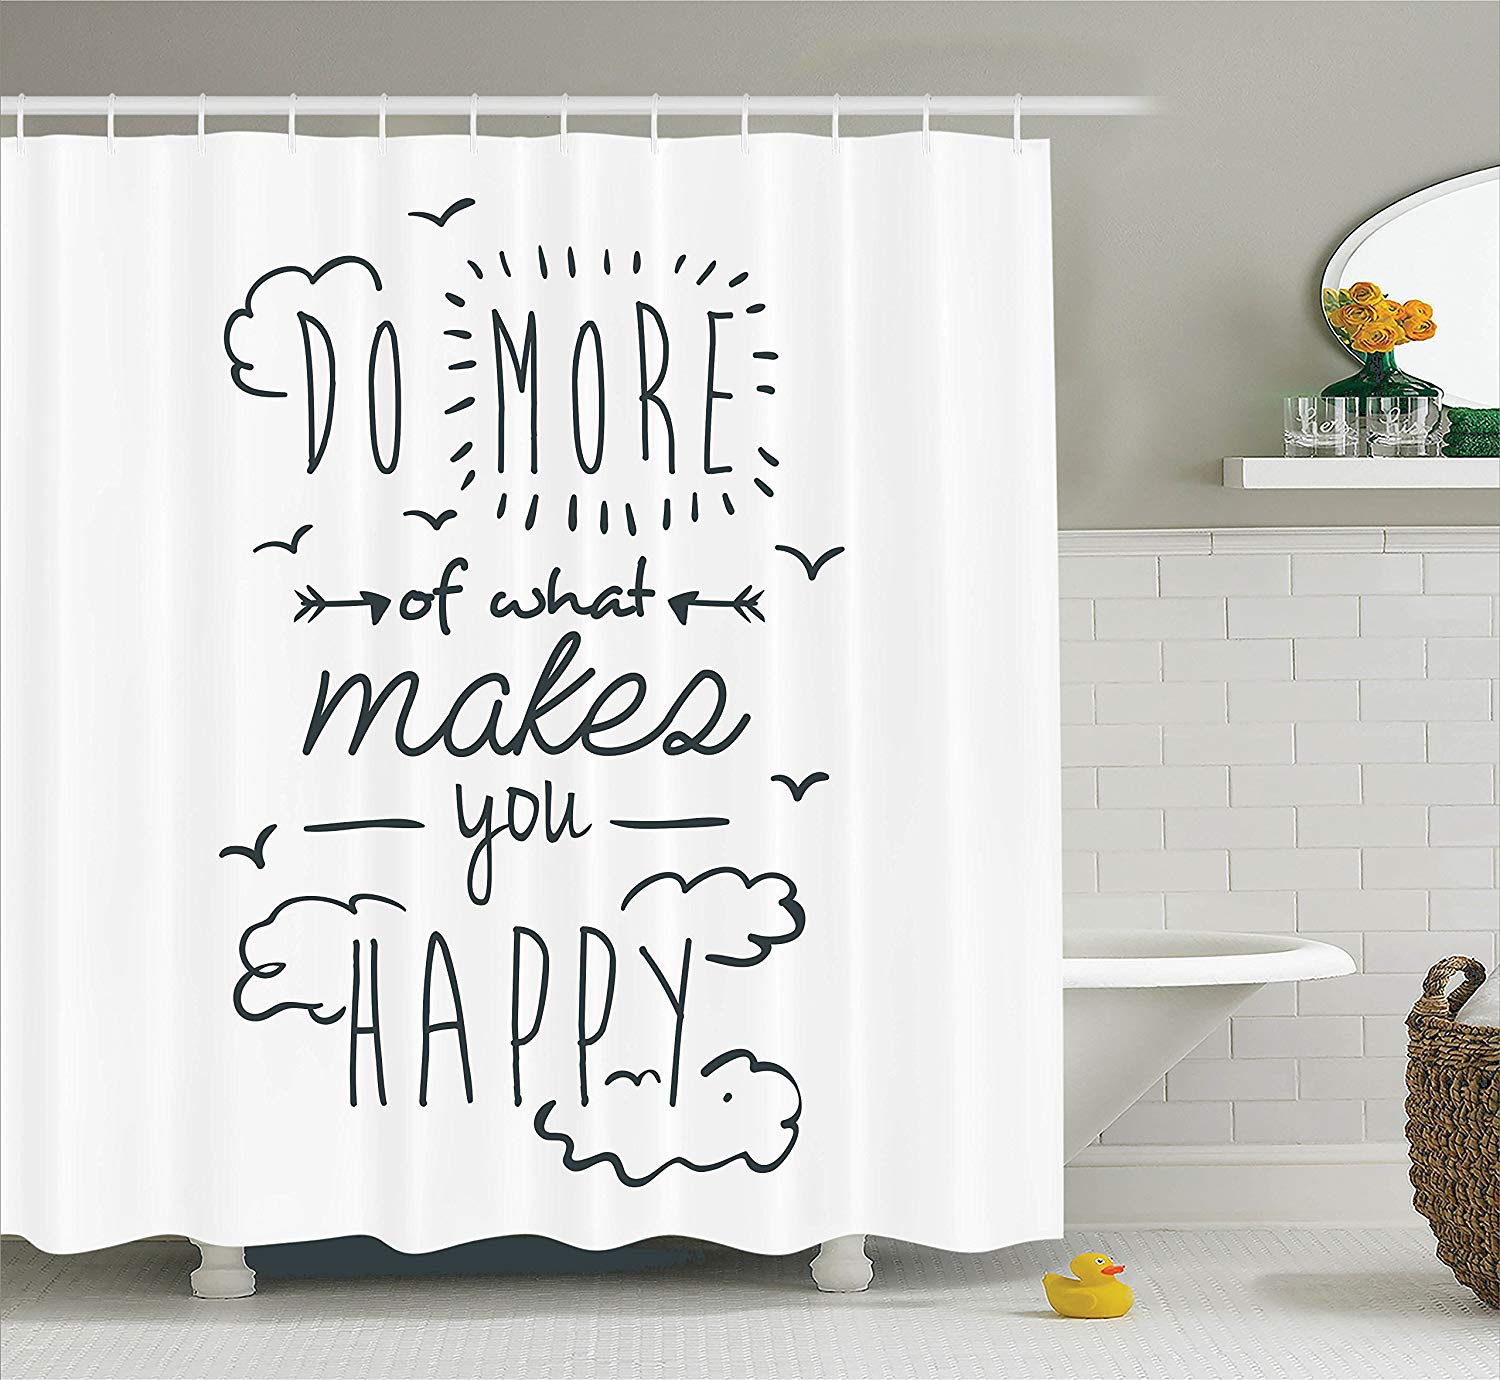 Funny Shower Curtain Inspirational Quotes Decor Do More Of